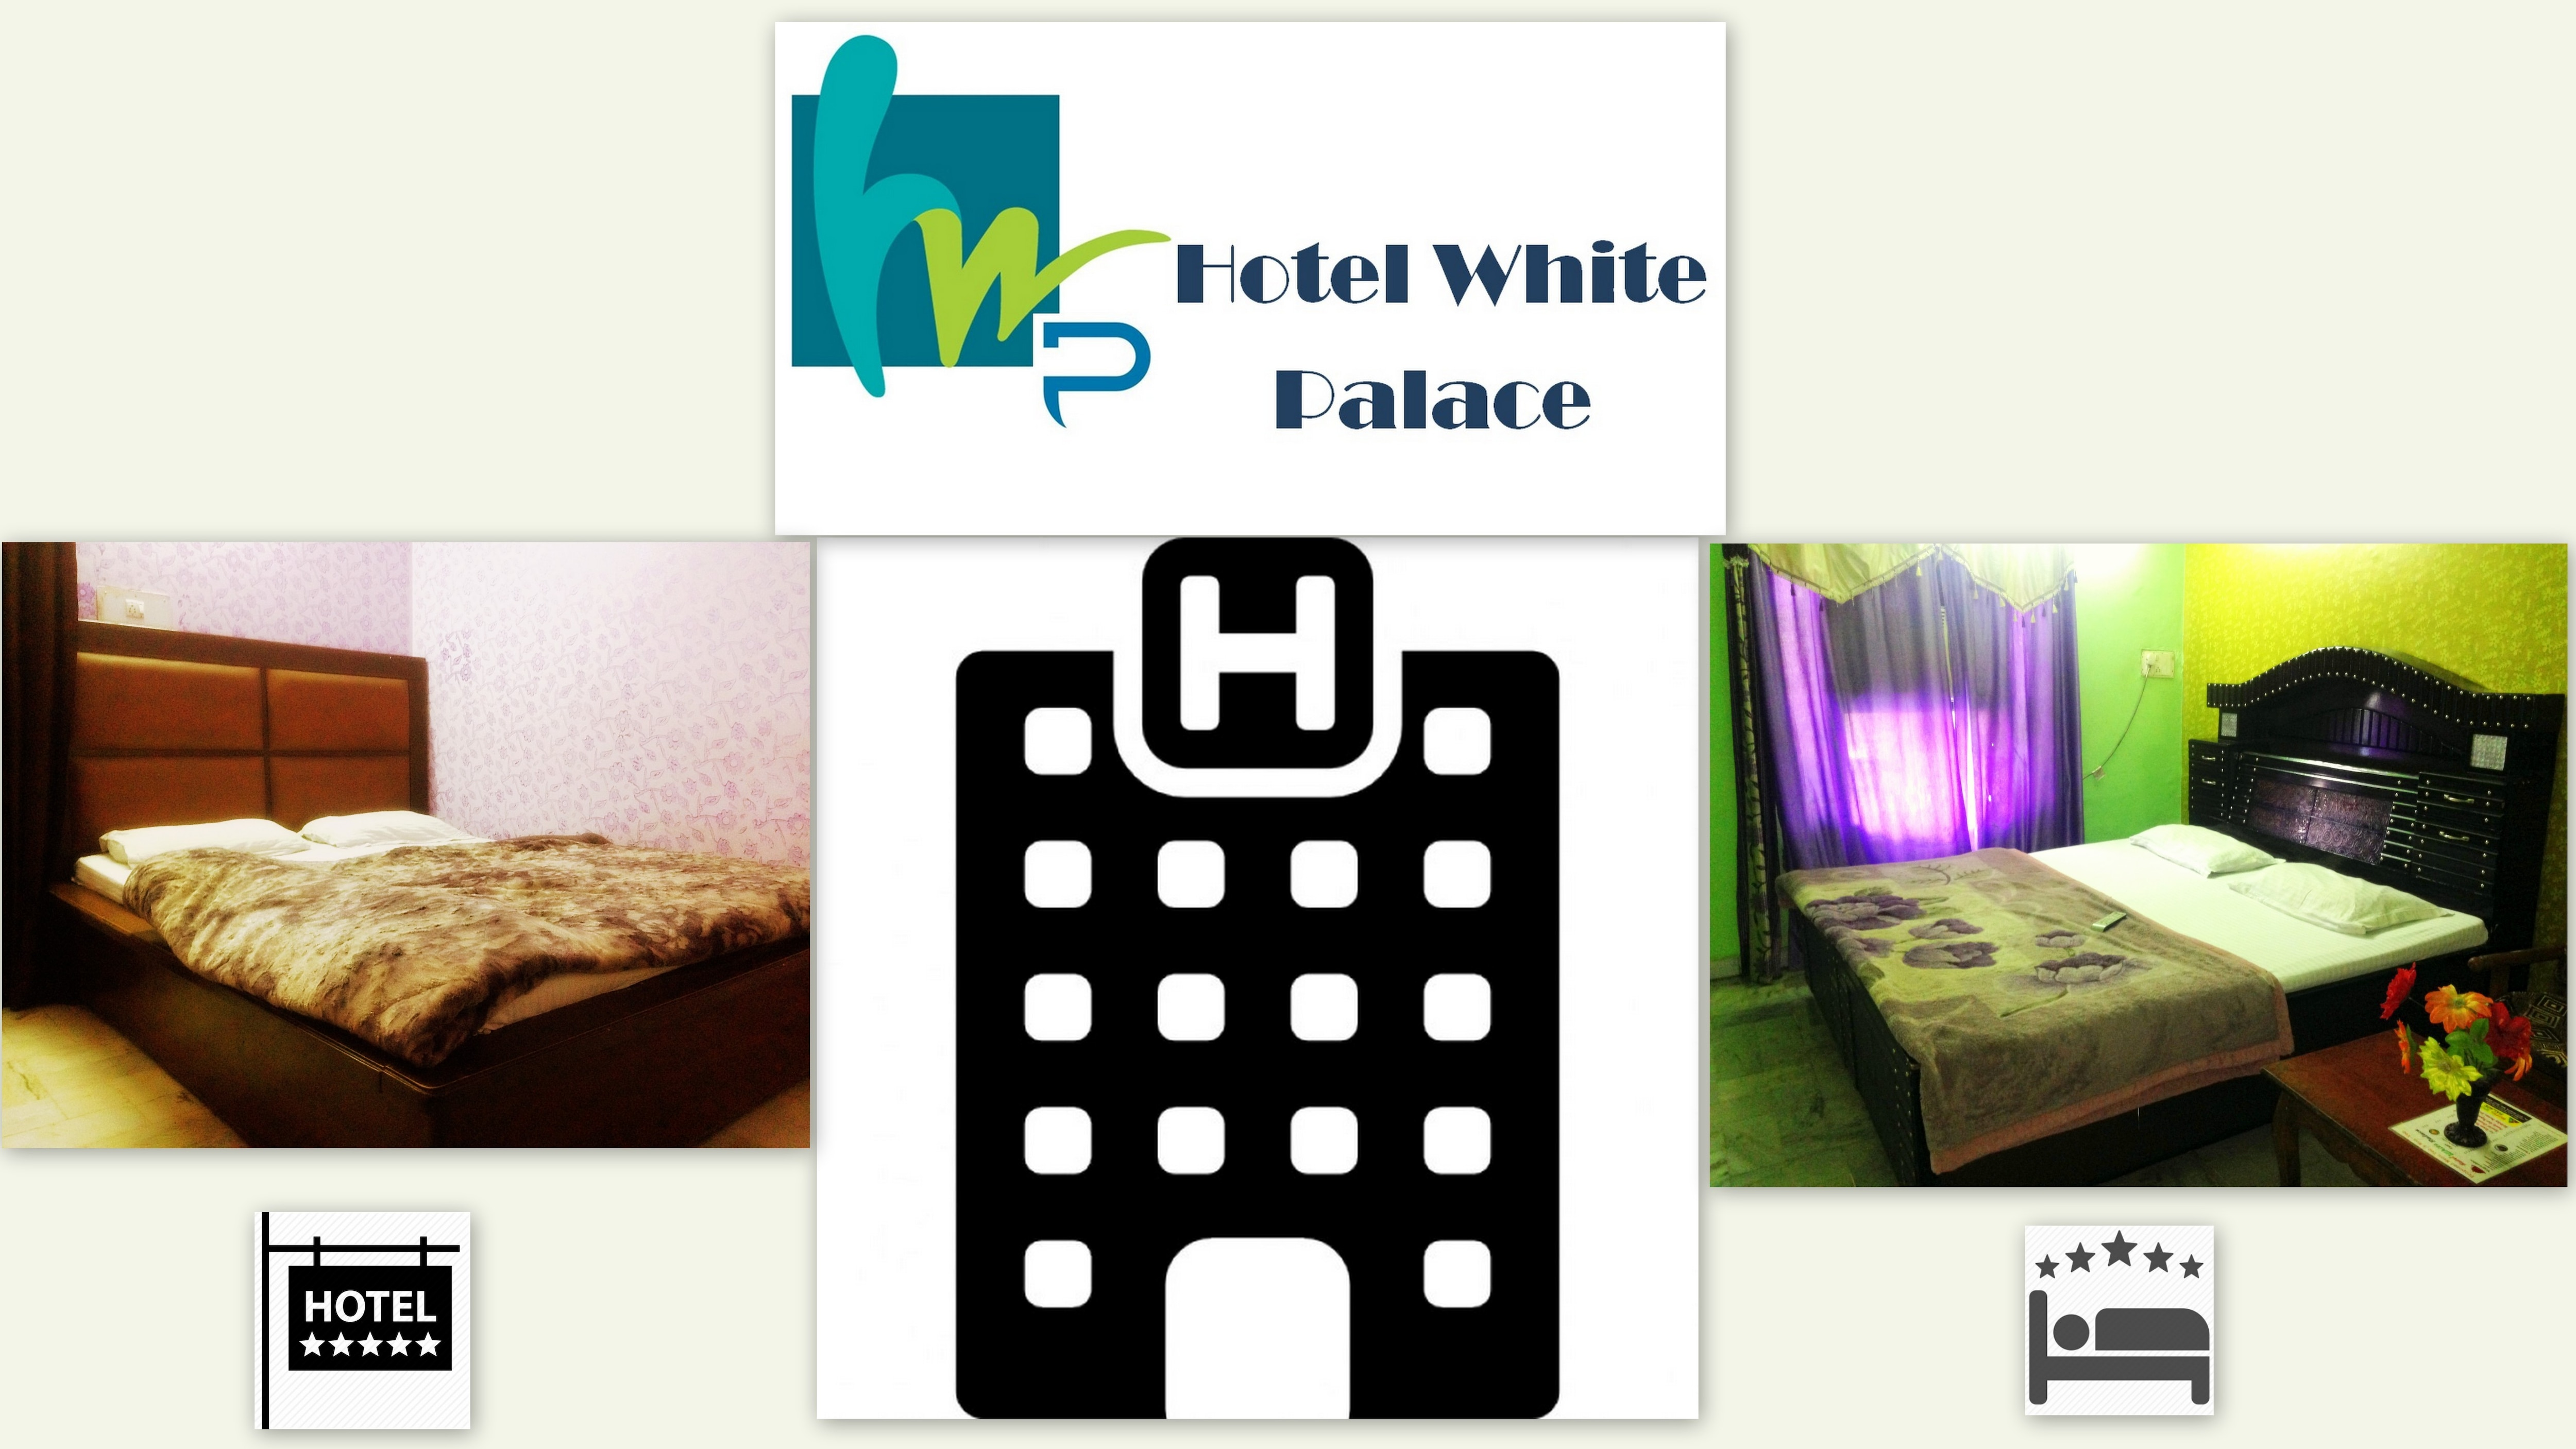 Hotel white palace is best budget hotel in city beautiful Chandigarh. You can get all best services in one palace. Find best deals and offers in hotel white palace in Chandigarh. Hotel white palace provides best luxurious room in sector 42 attawa Chandigarh. Hotel white palace is very near to bus stand sector 43 Chandigarh and sector 42 lake Chandigarh. We have all range of room i.e. below 700, 800, 900, and 1000 in Chandigarh.